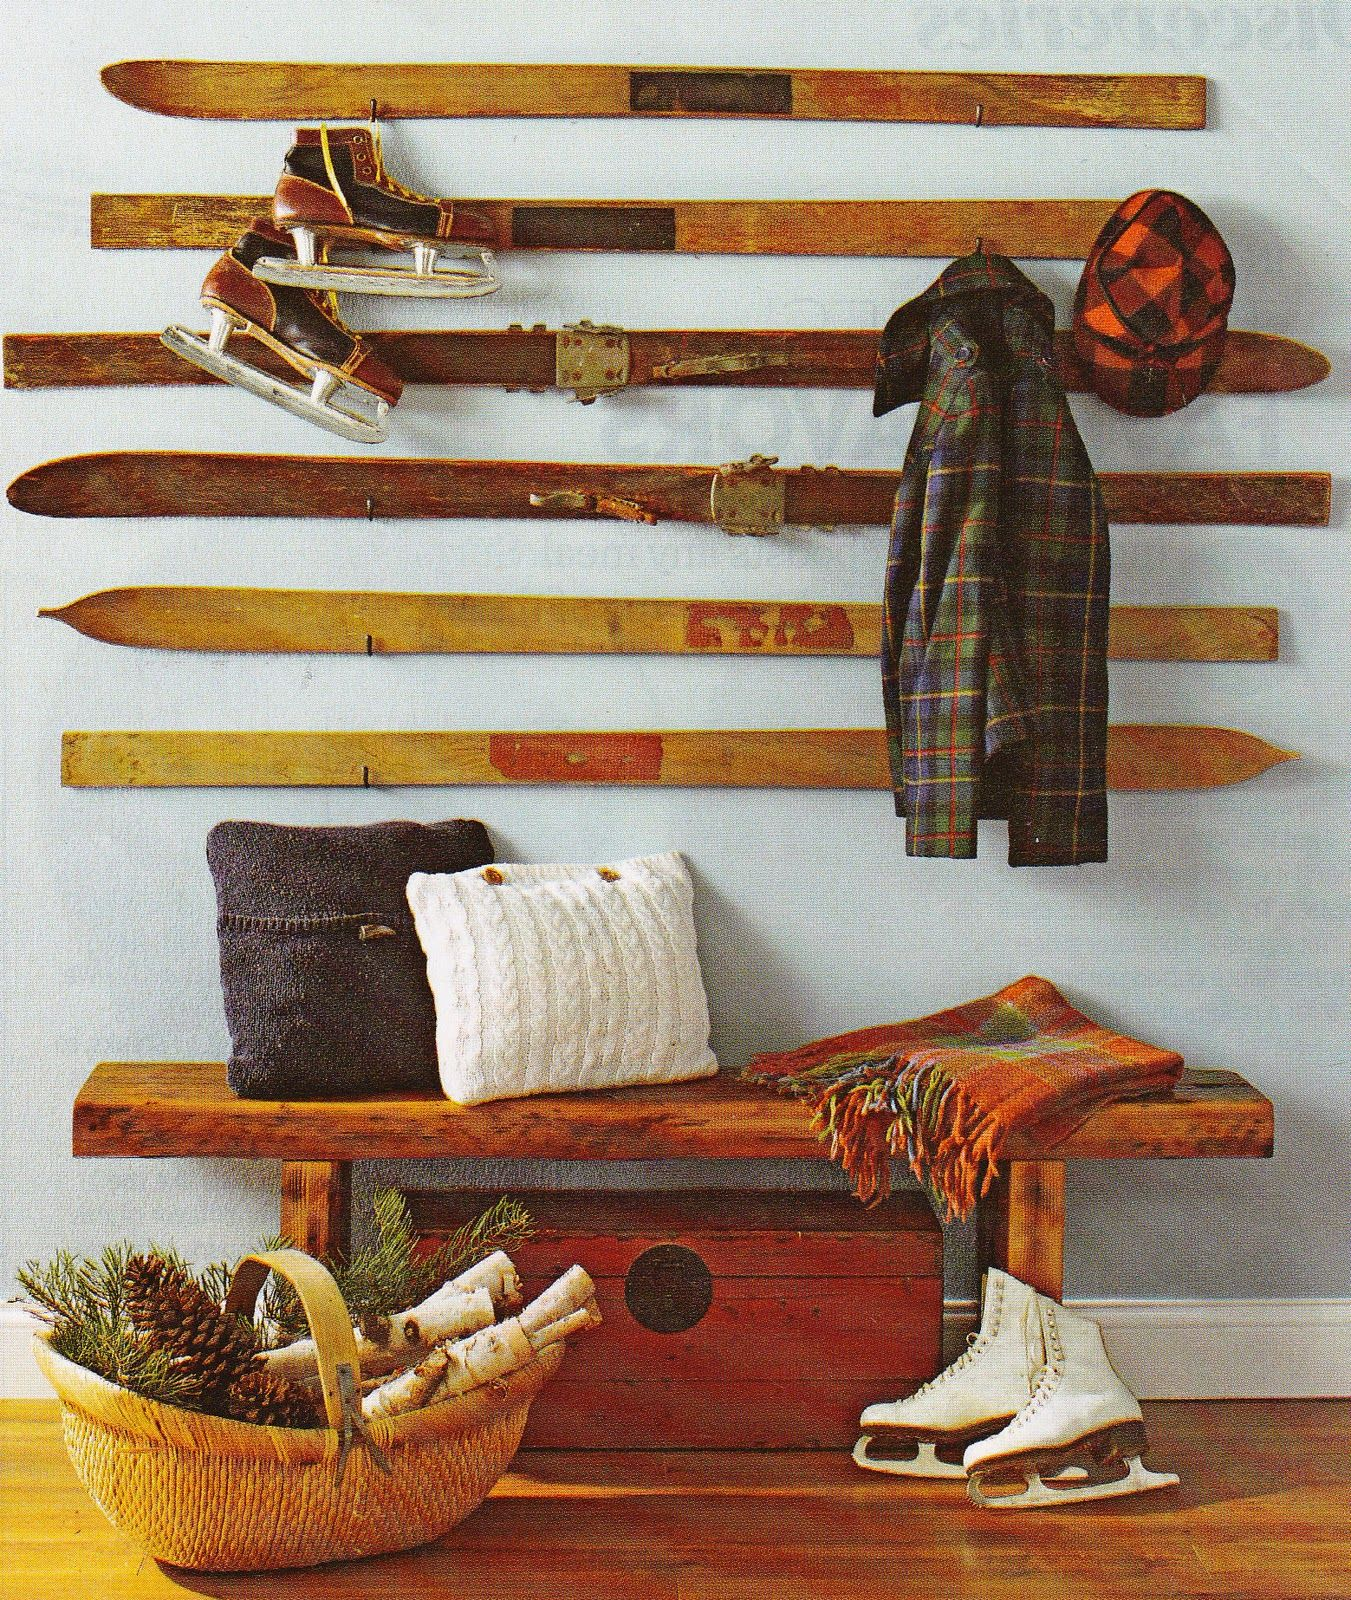 Condo Decorating Ideas: Idea For Displaying Antique Skis And Skates. Photo: Swoon